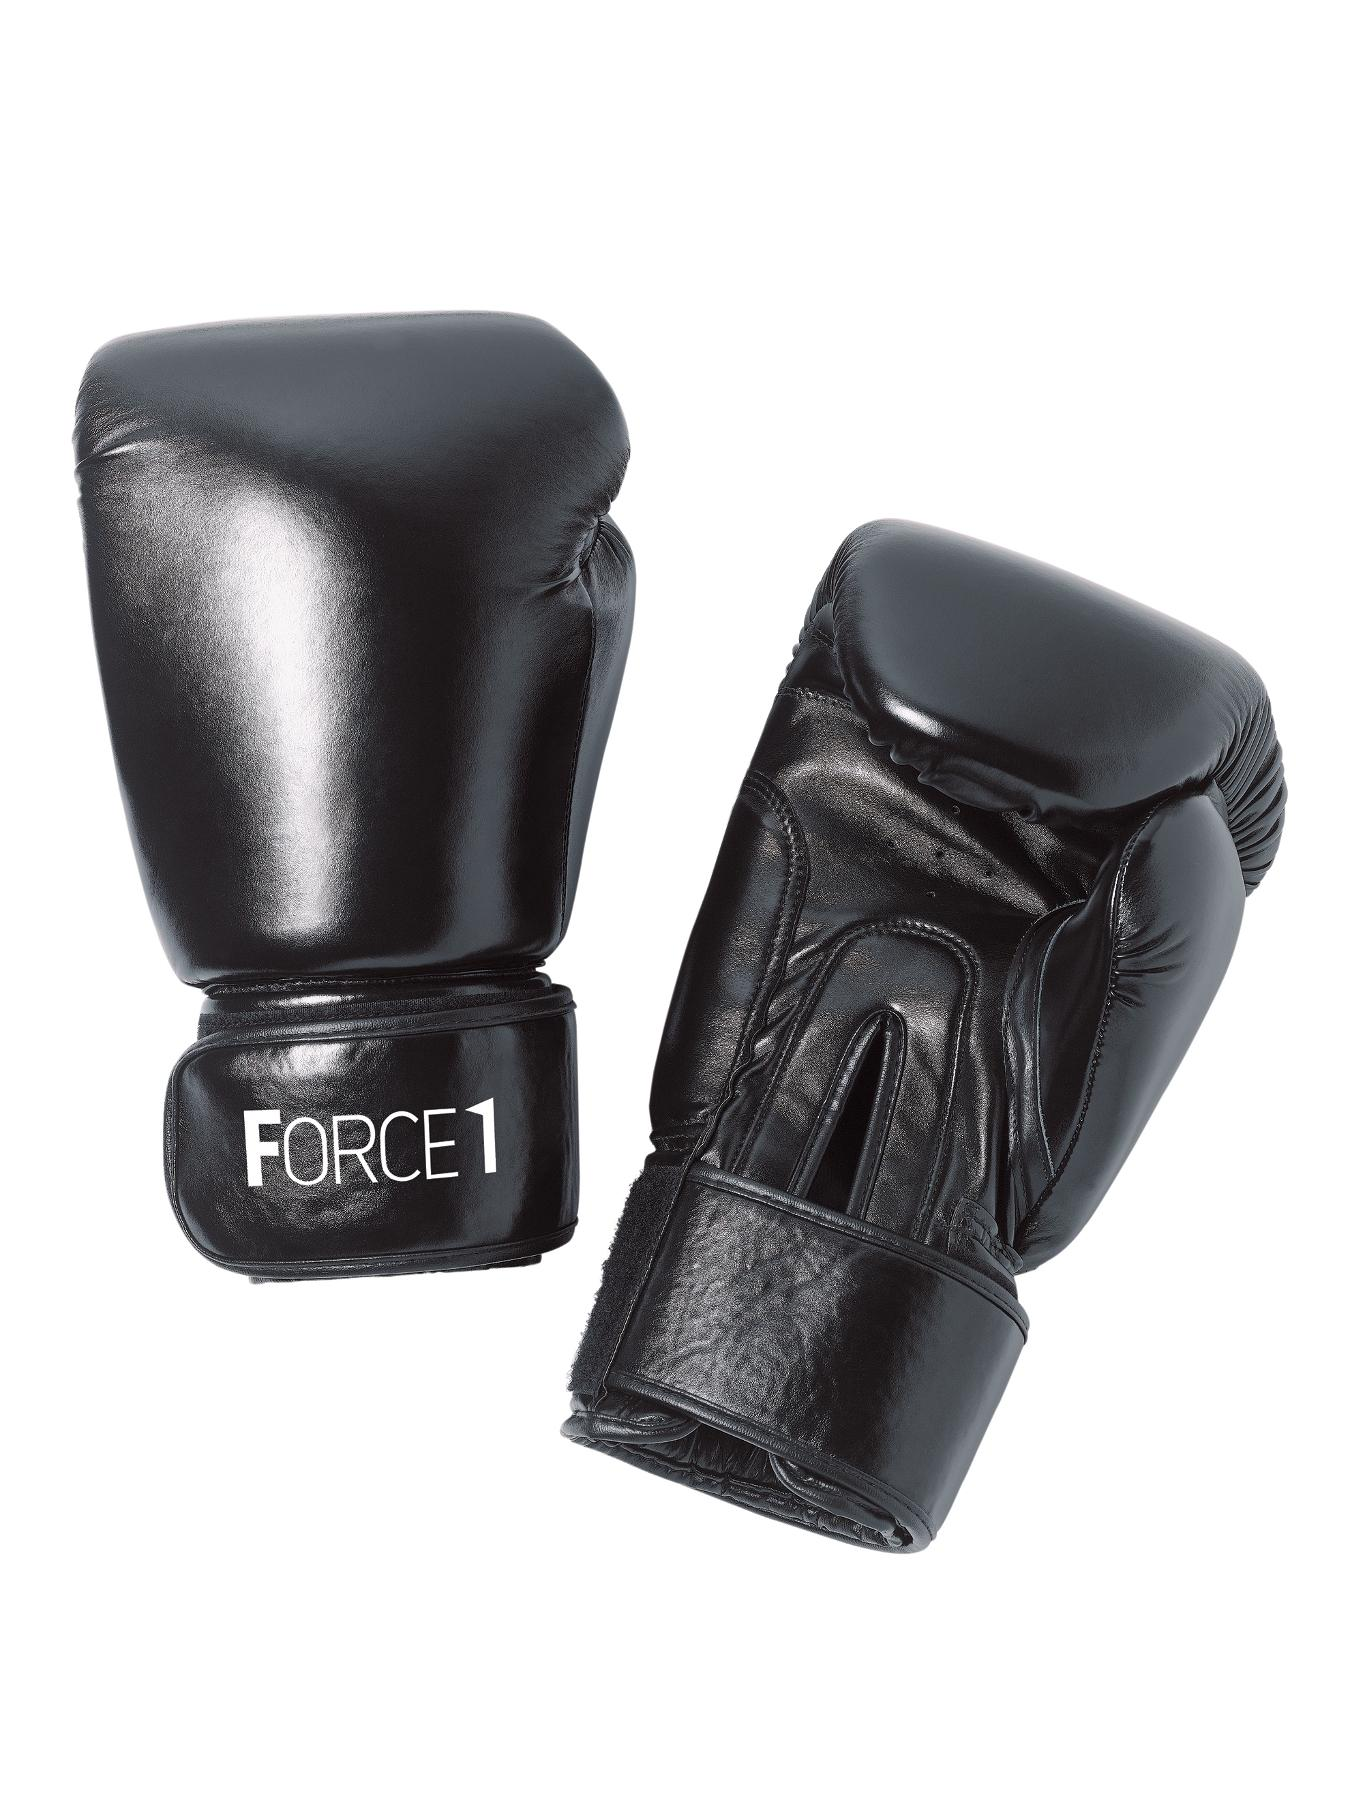 FORCE 1 Boxing Gloves